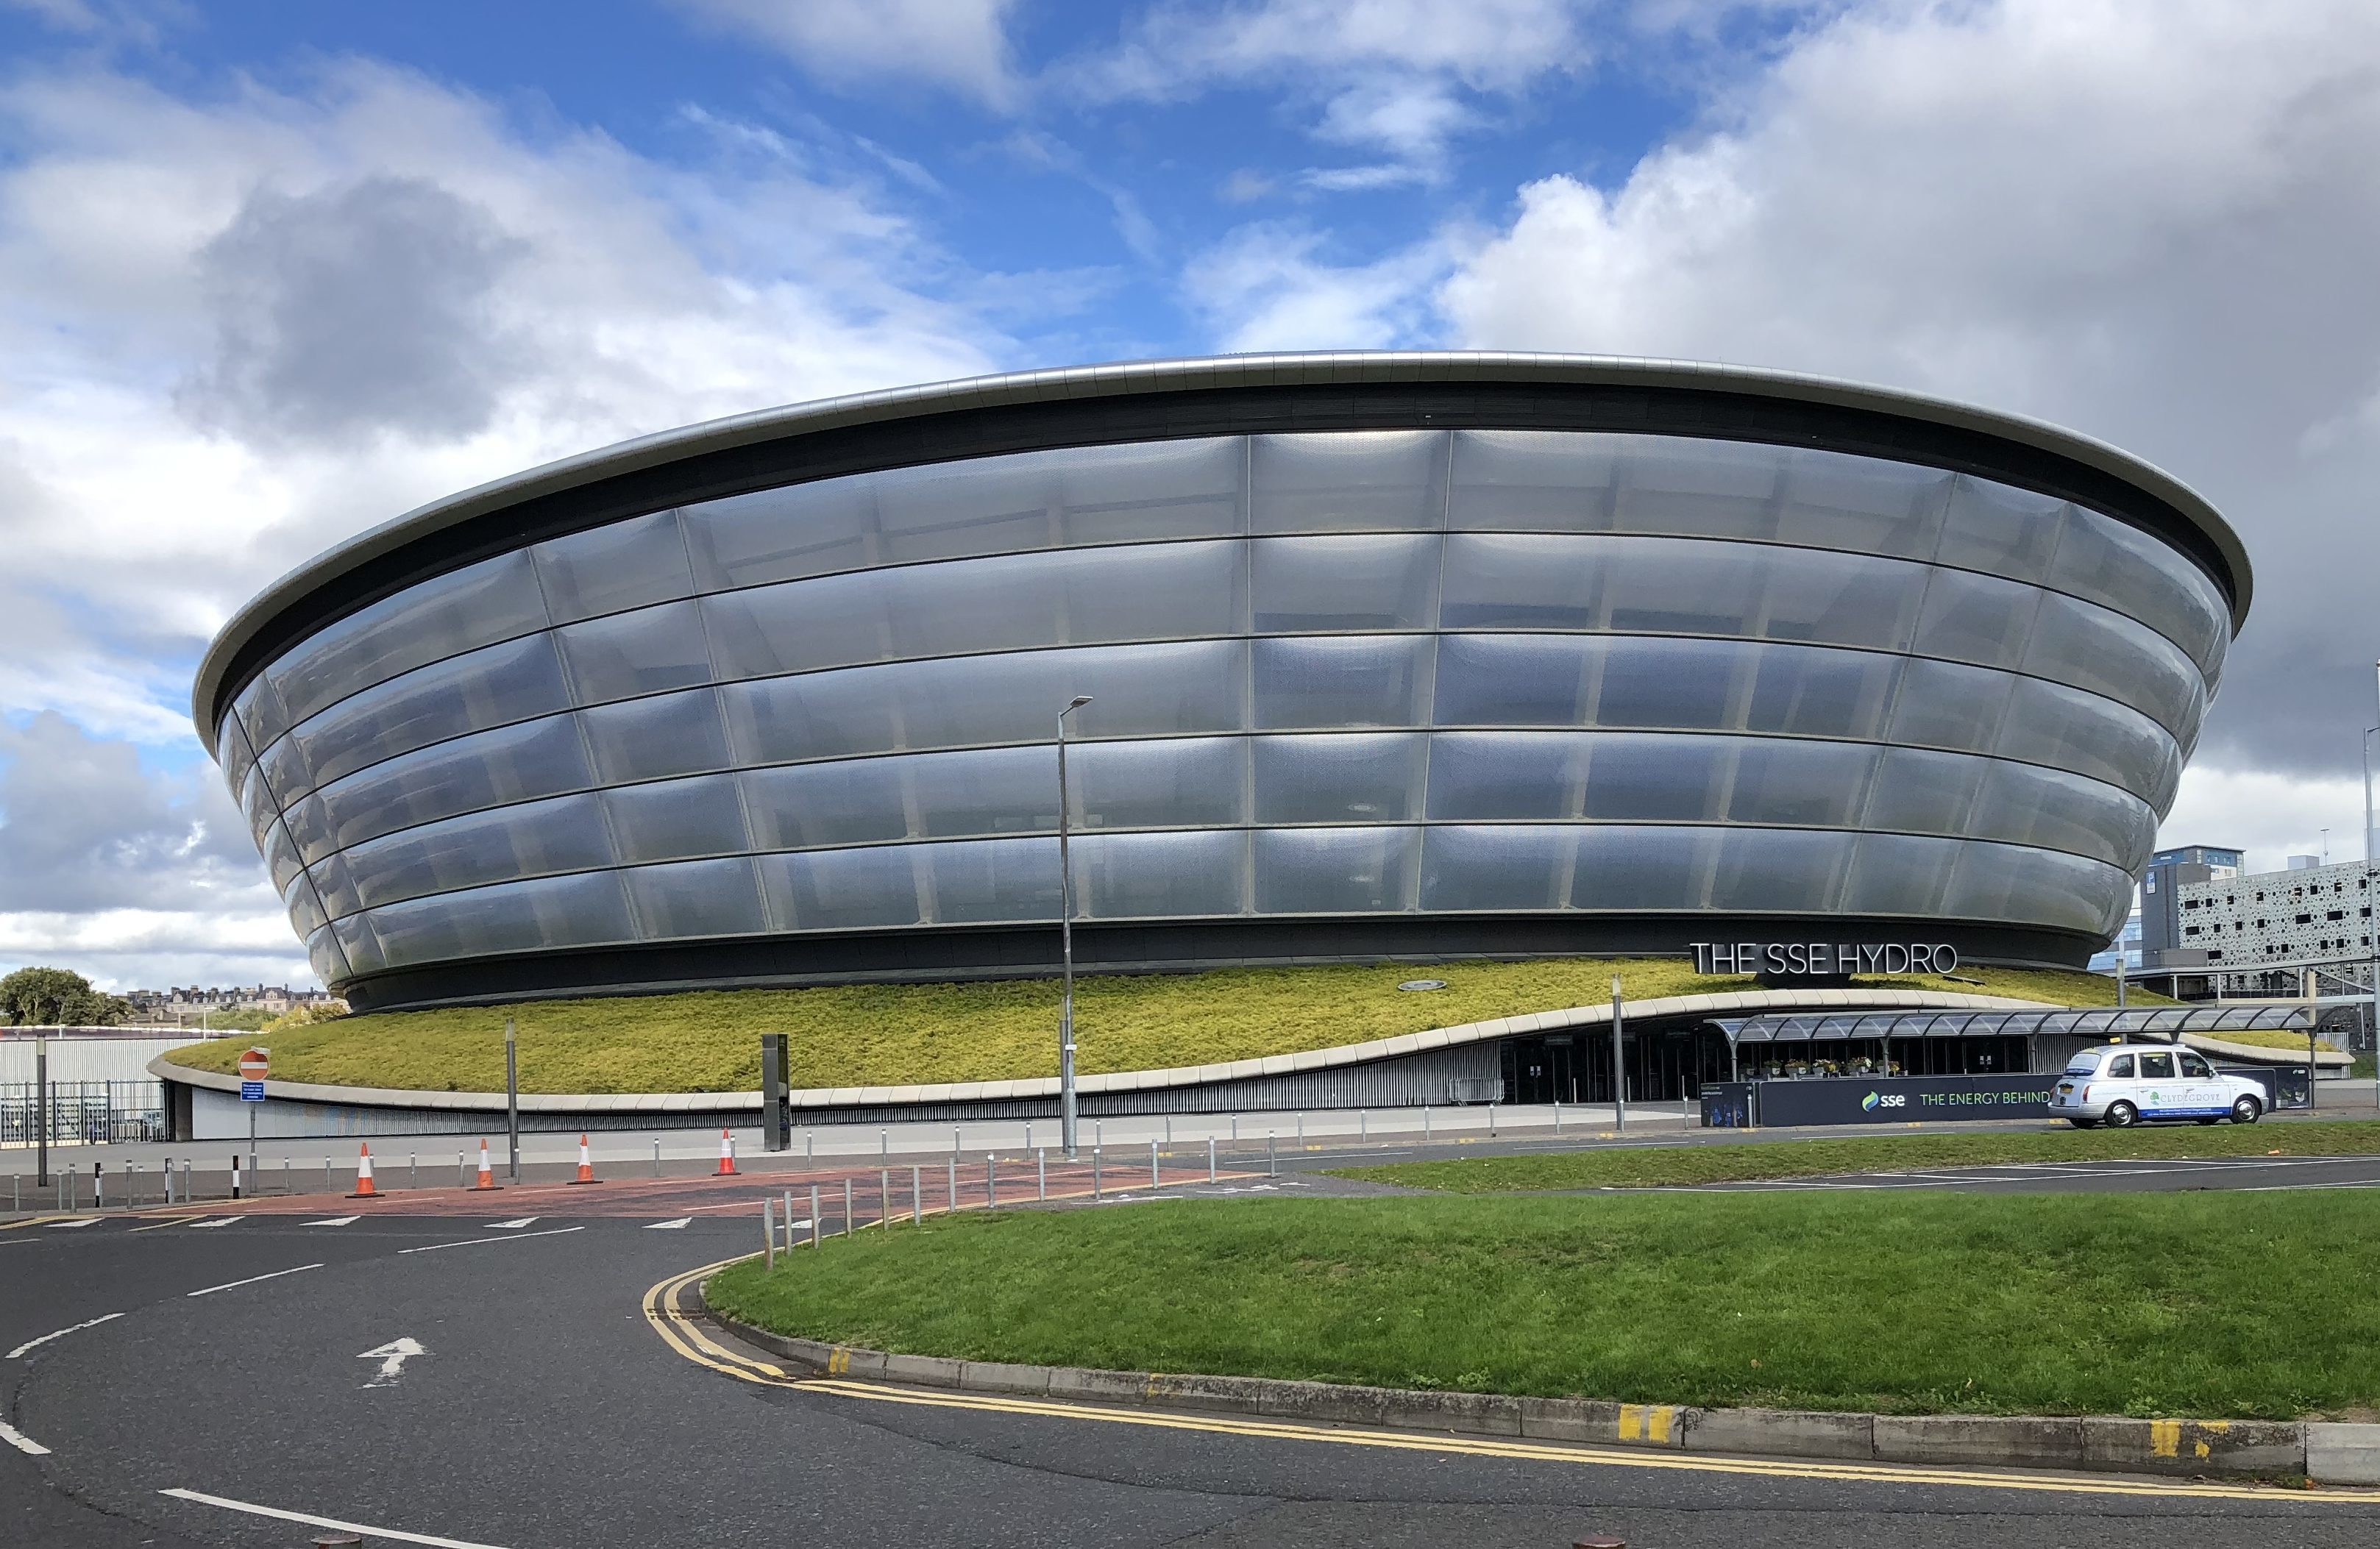 Five years of The SSE Hydro: The huge events that have